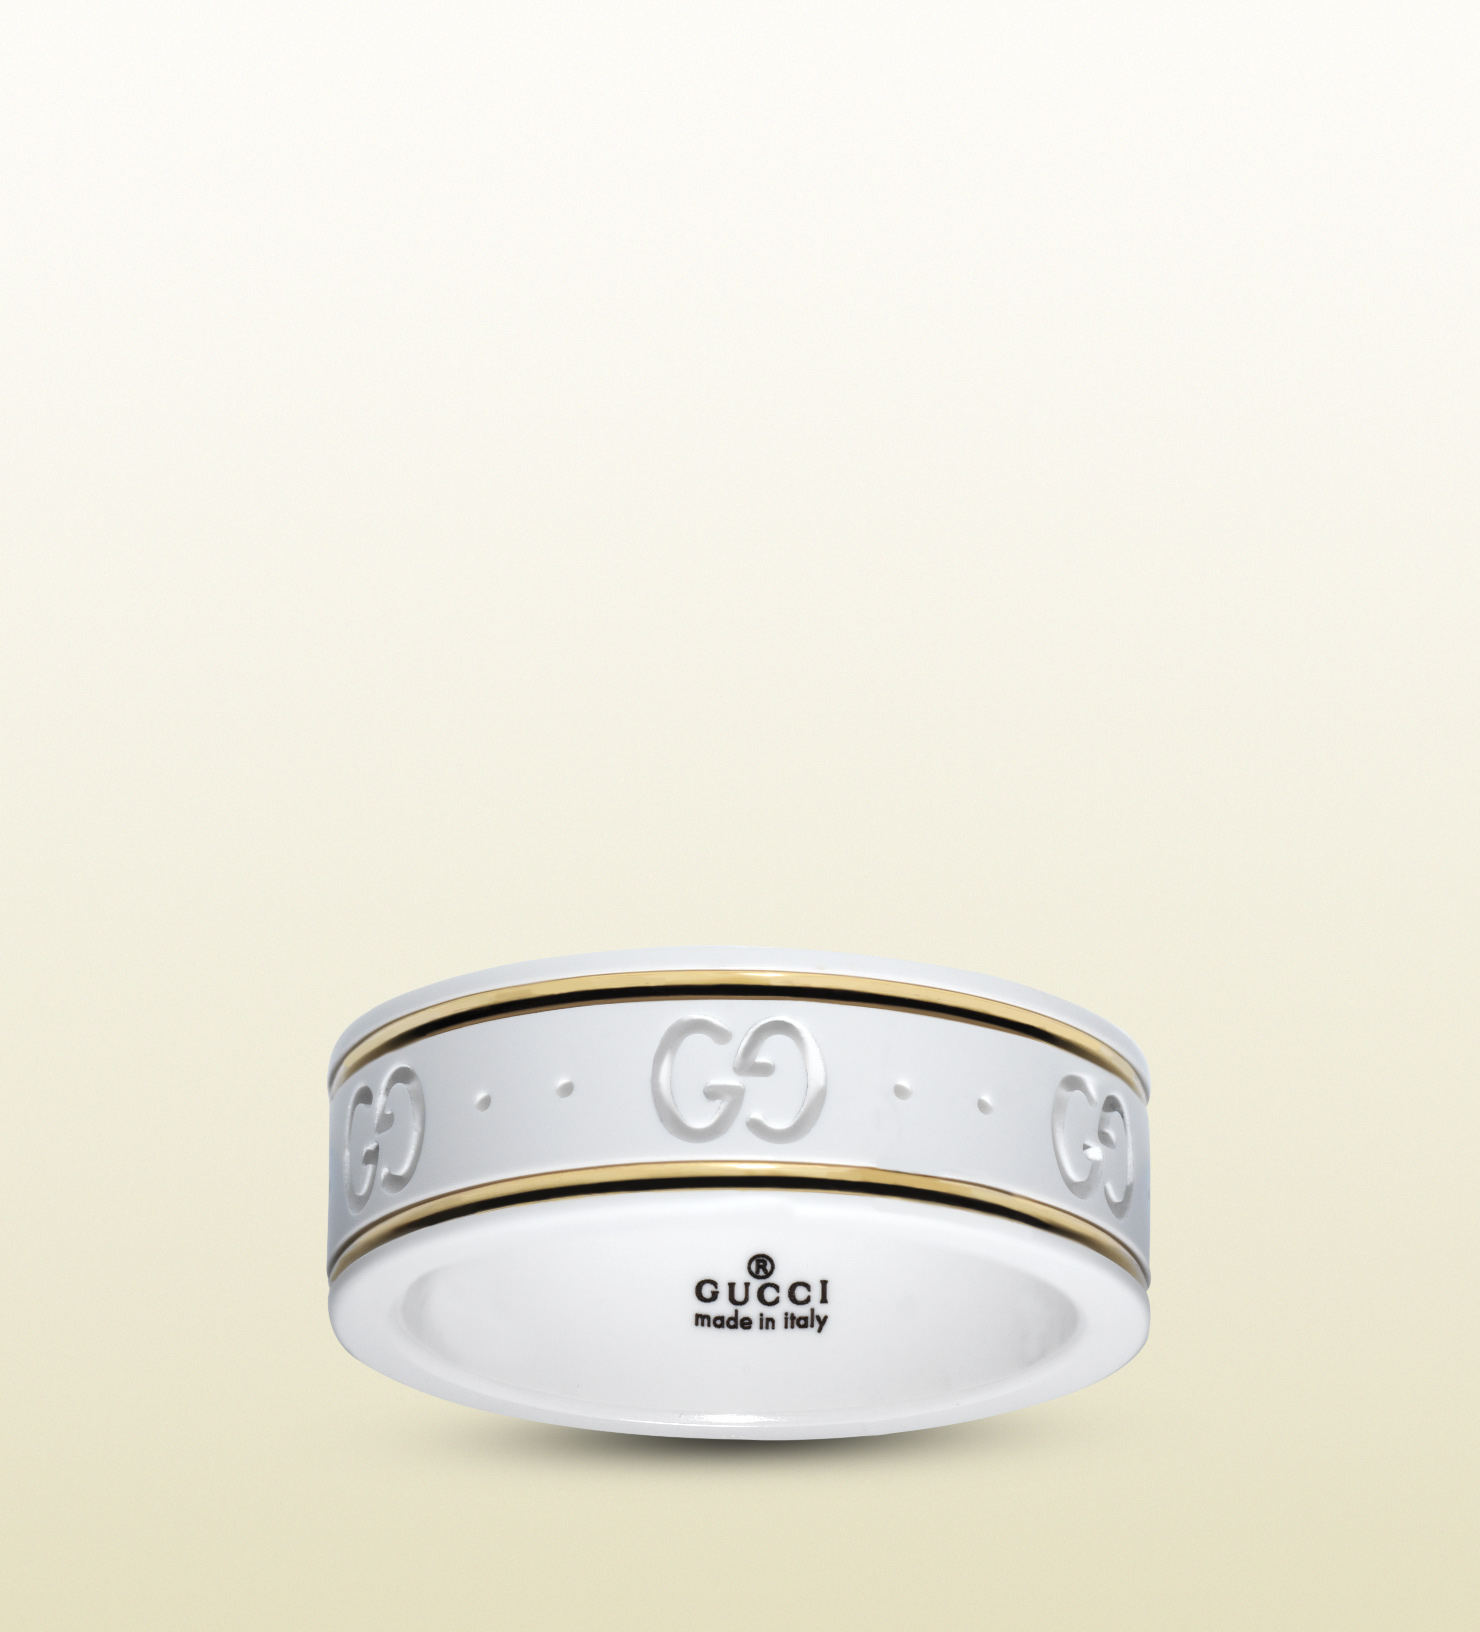 4a847c8dfd2 Lyst - Gucci Icon Ring In Yellow Gold And White Zirconia Powder in ...